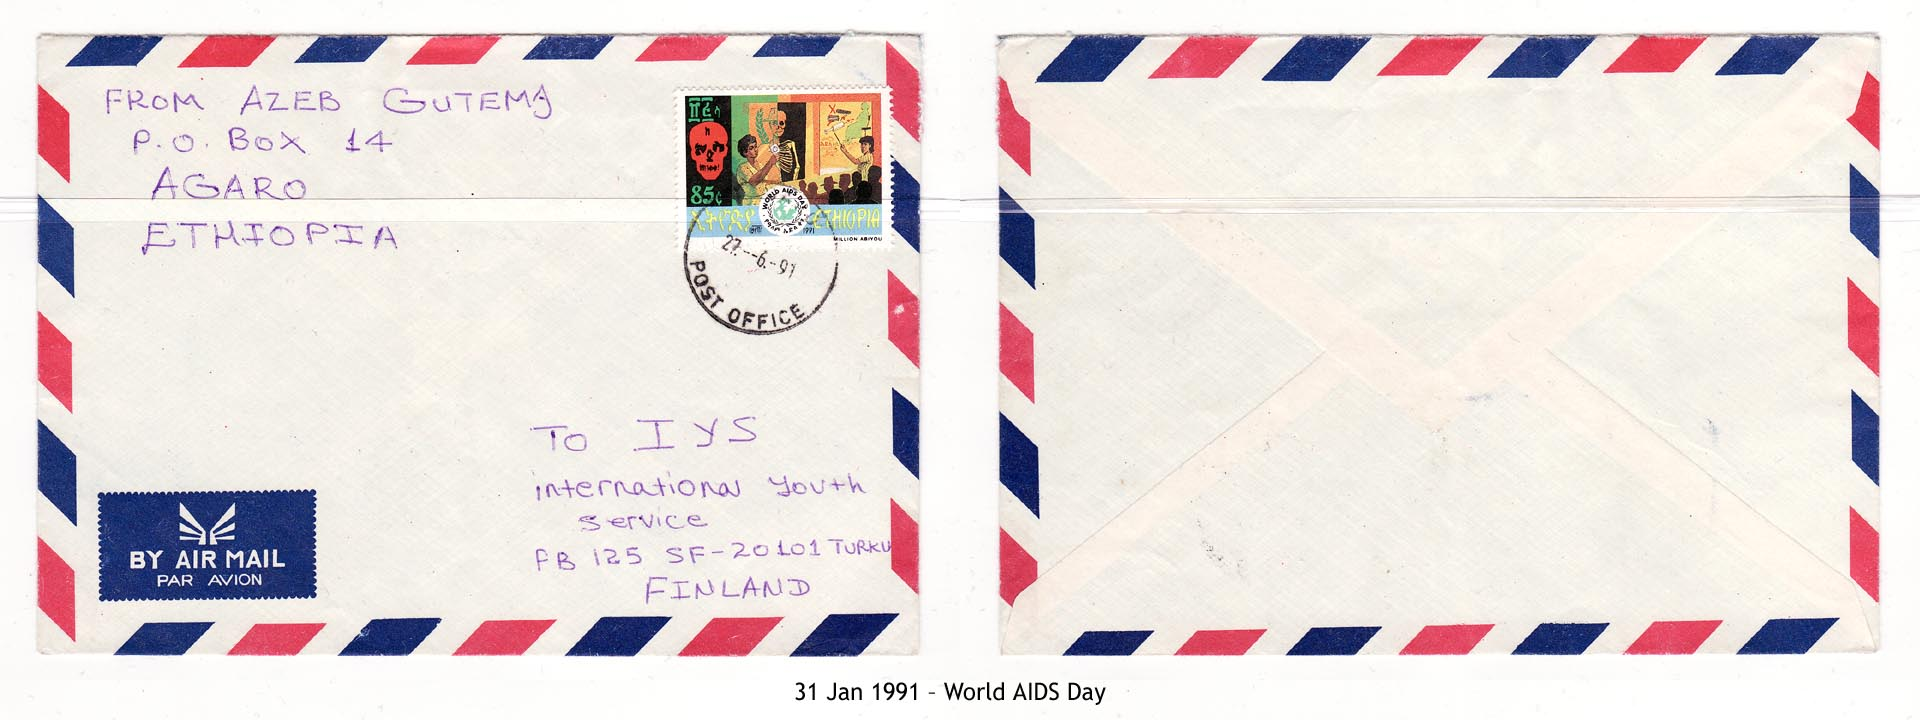 19910131 – World AIDS Day